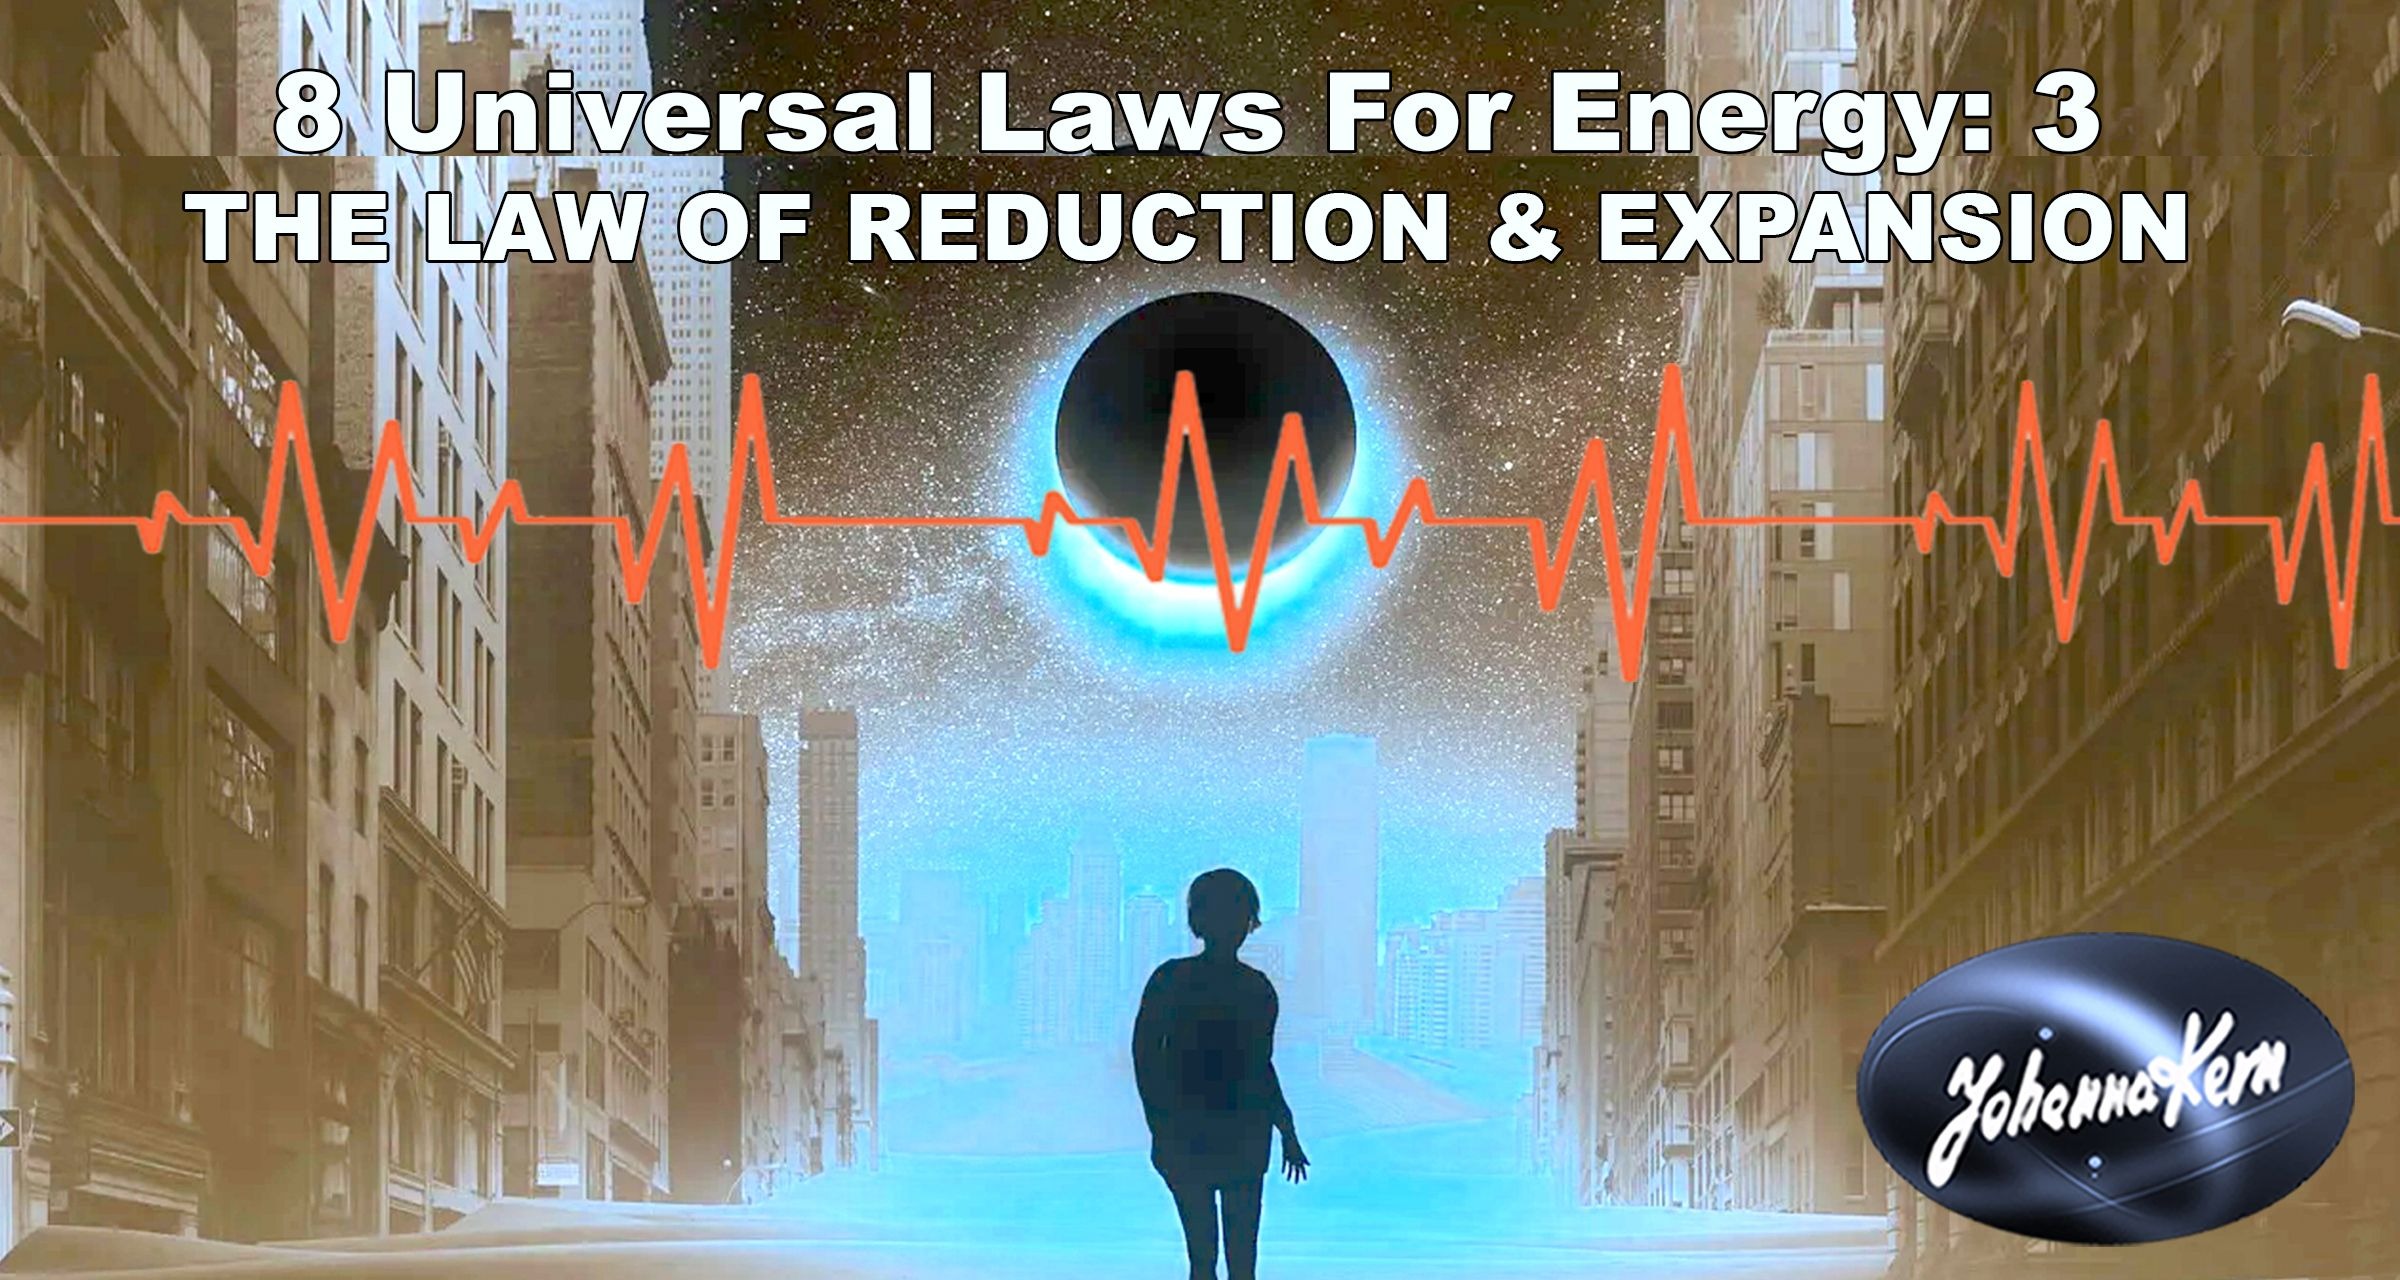 Dark Energy and The Law of Reduction & Expansion: 8 Universal Laws for Energy